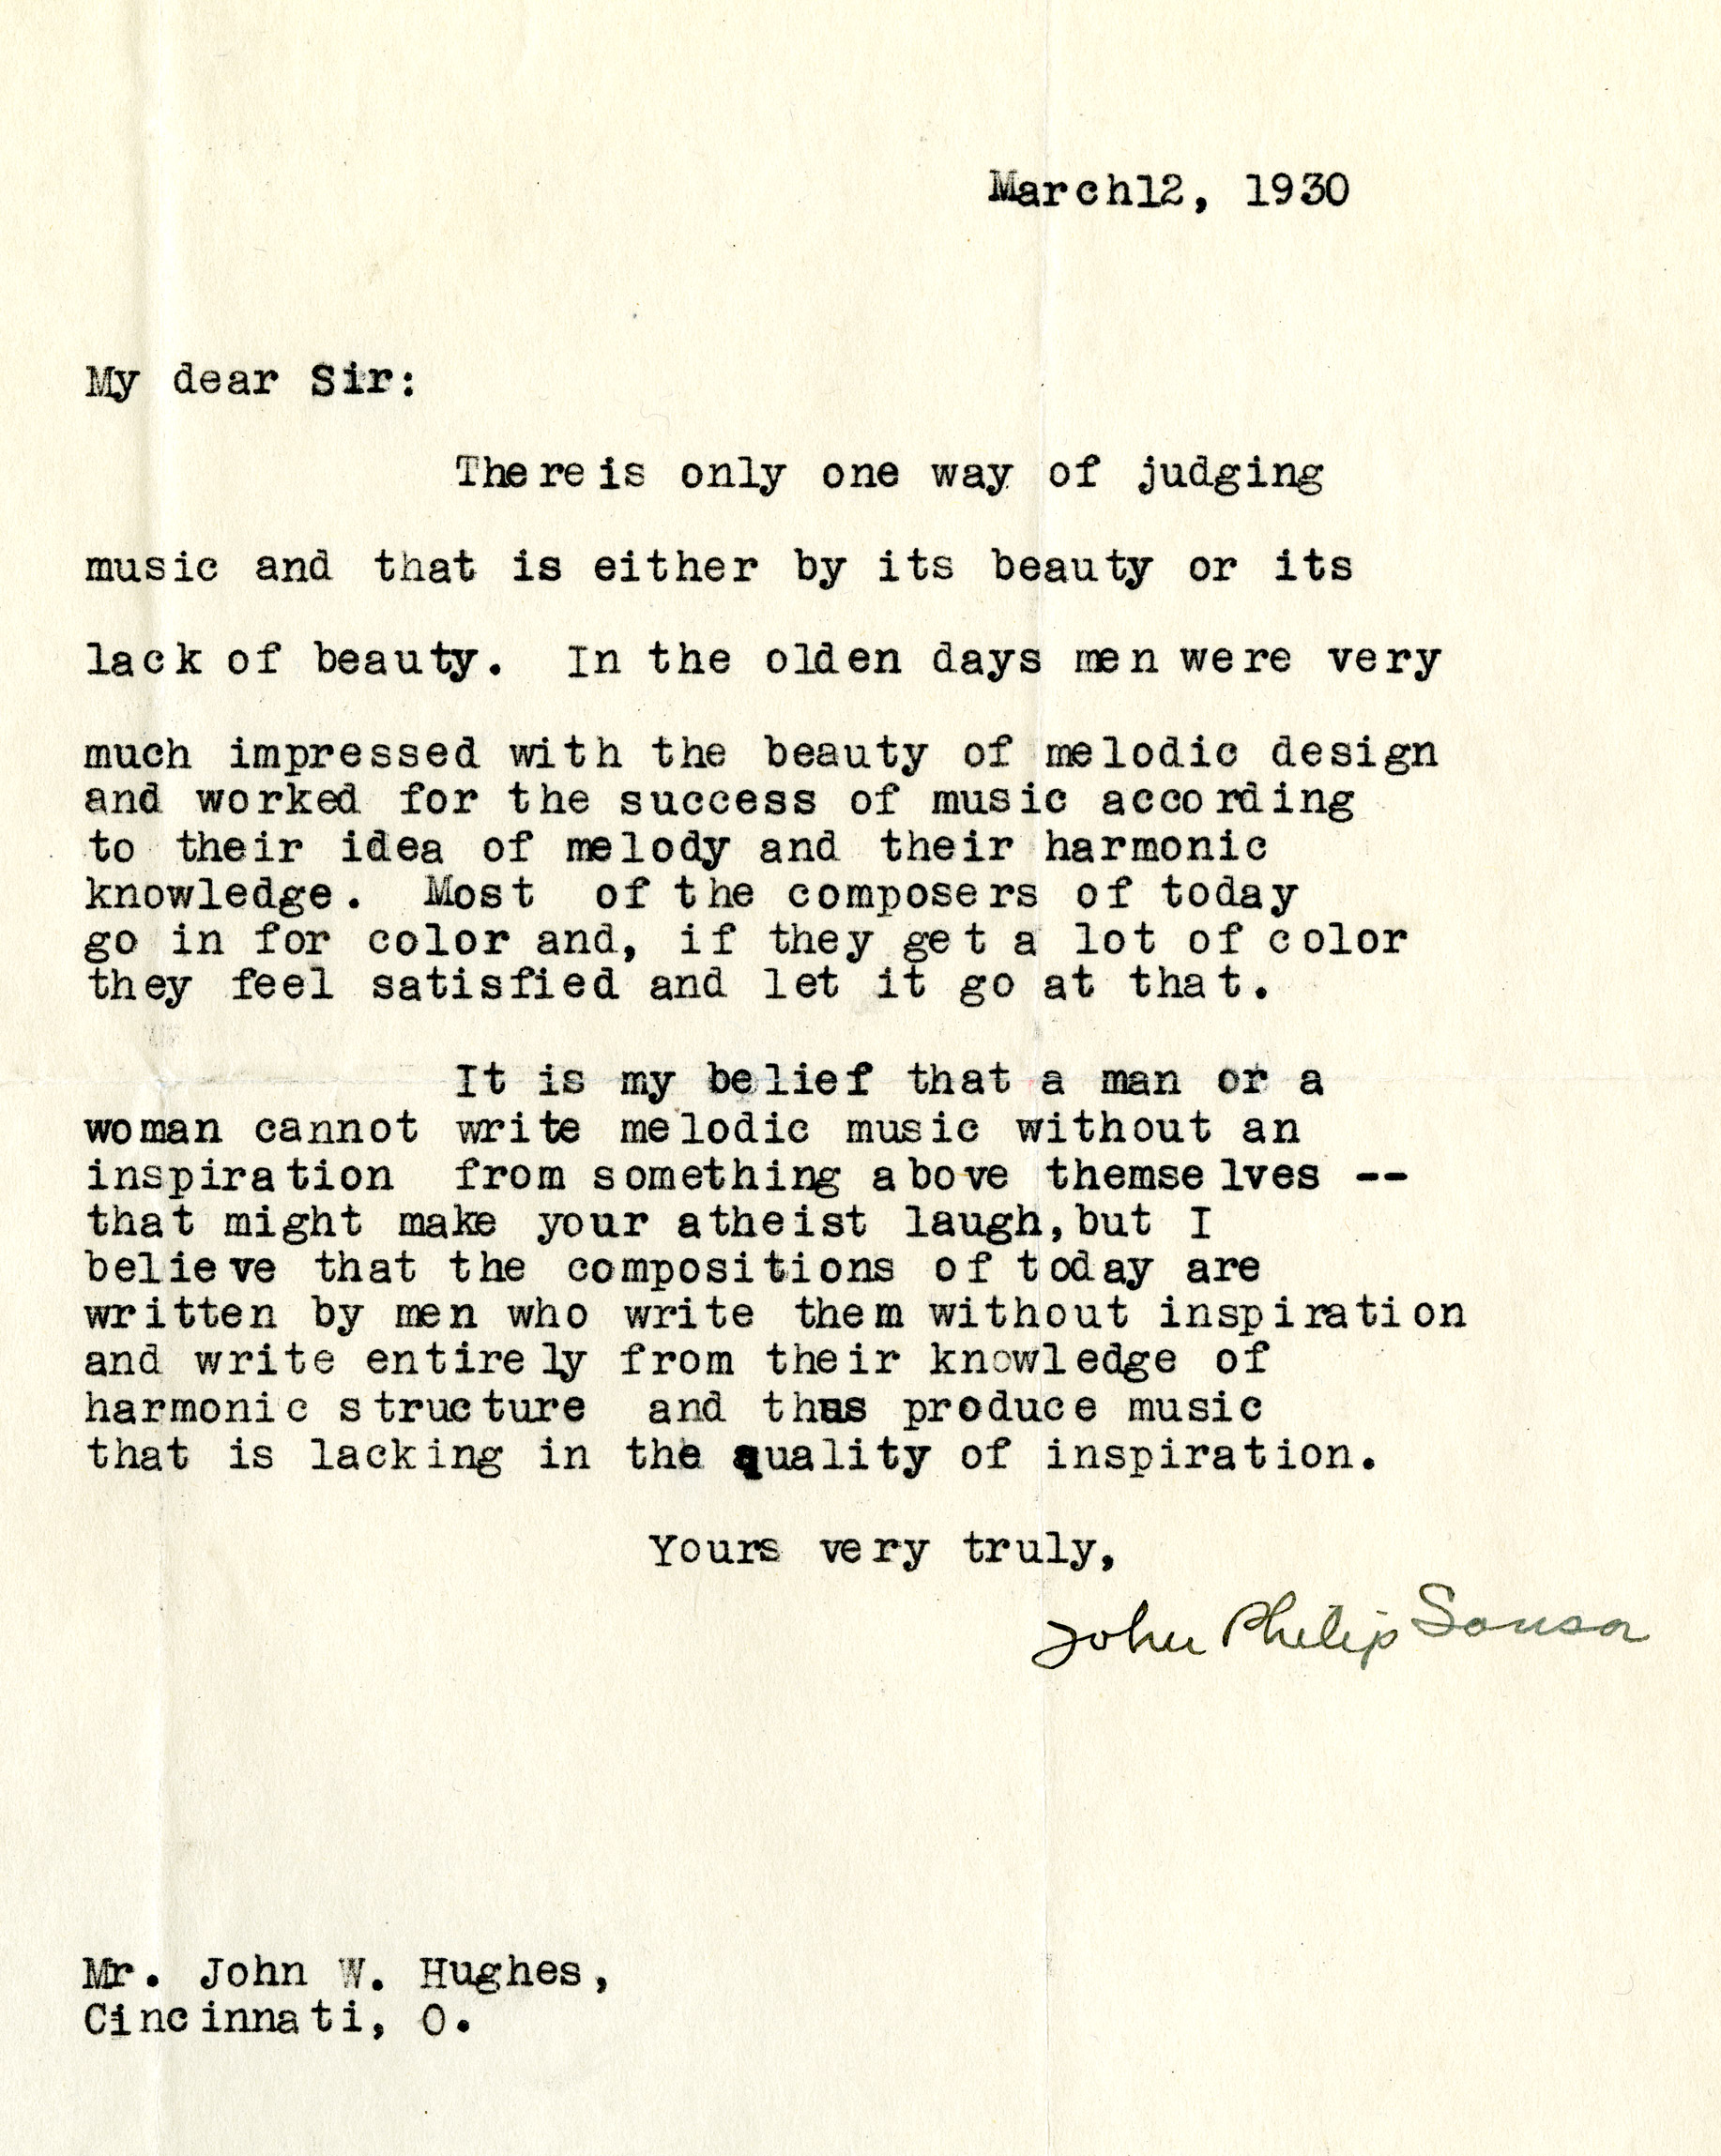 John P. Sousa to John W. Hughes, March 12, 1930. (Gilder Lehrman Collection)